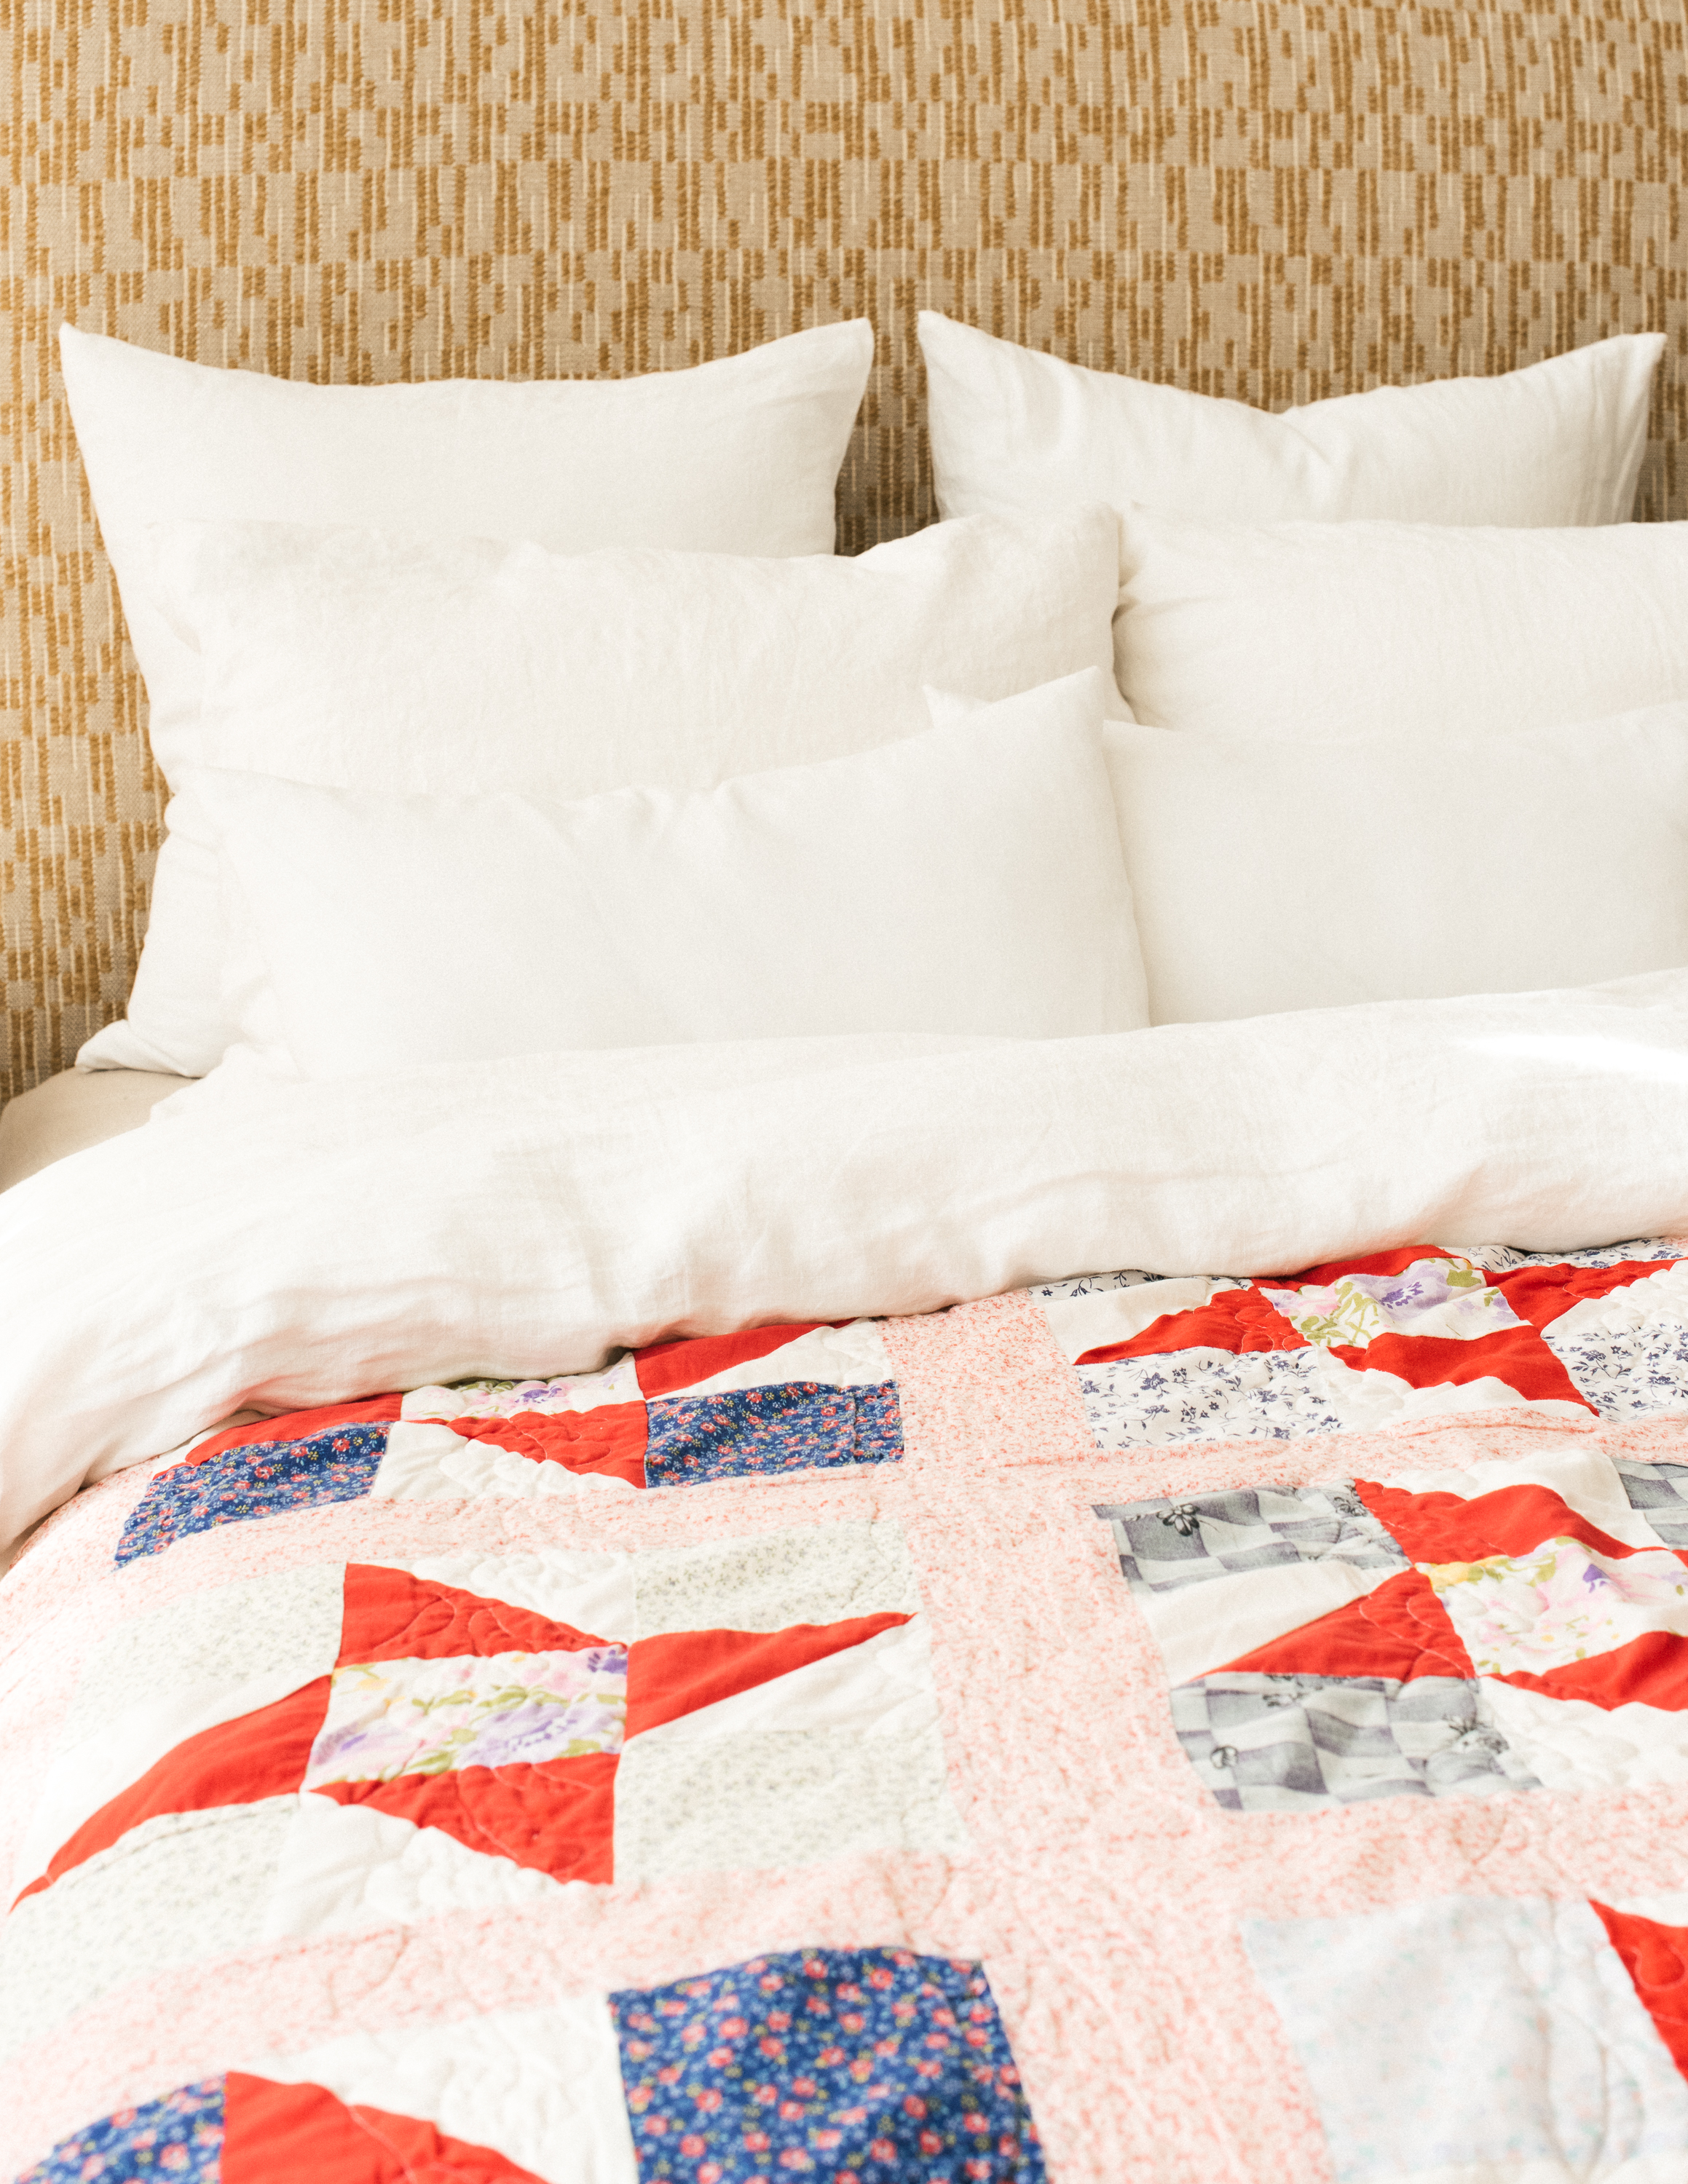 010819_SUNDAY_SHOP_BEDDING-10.jpg